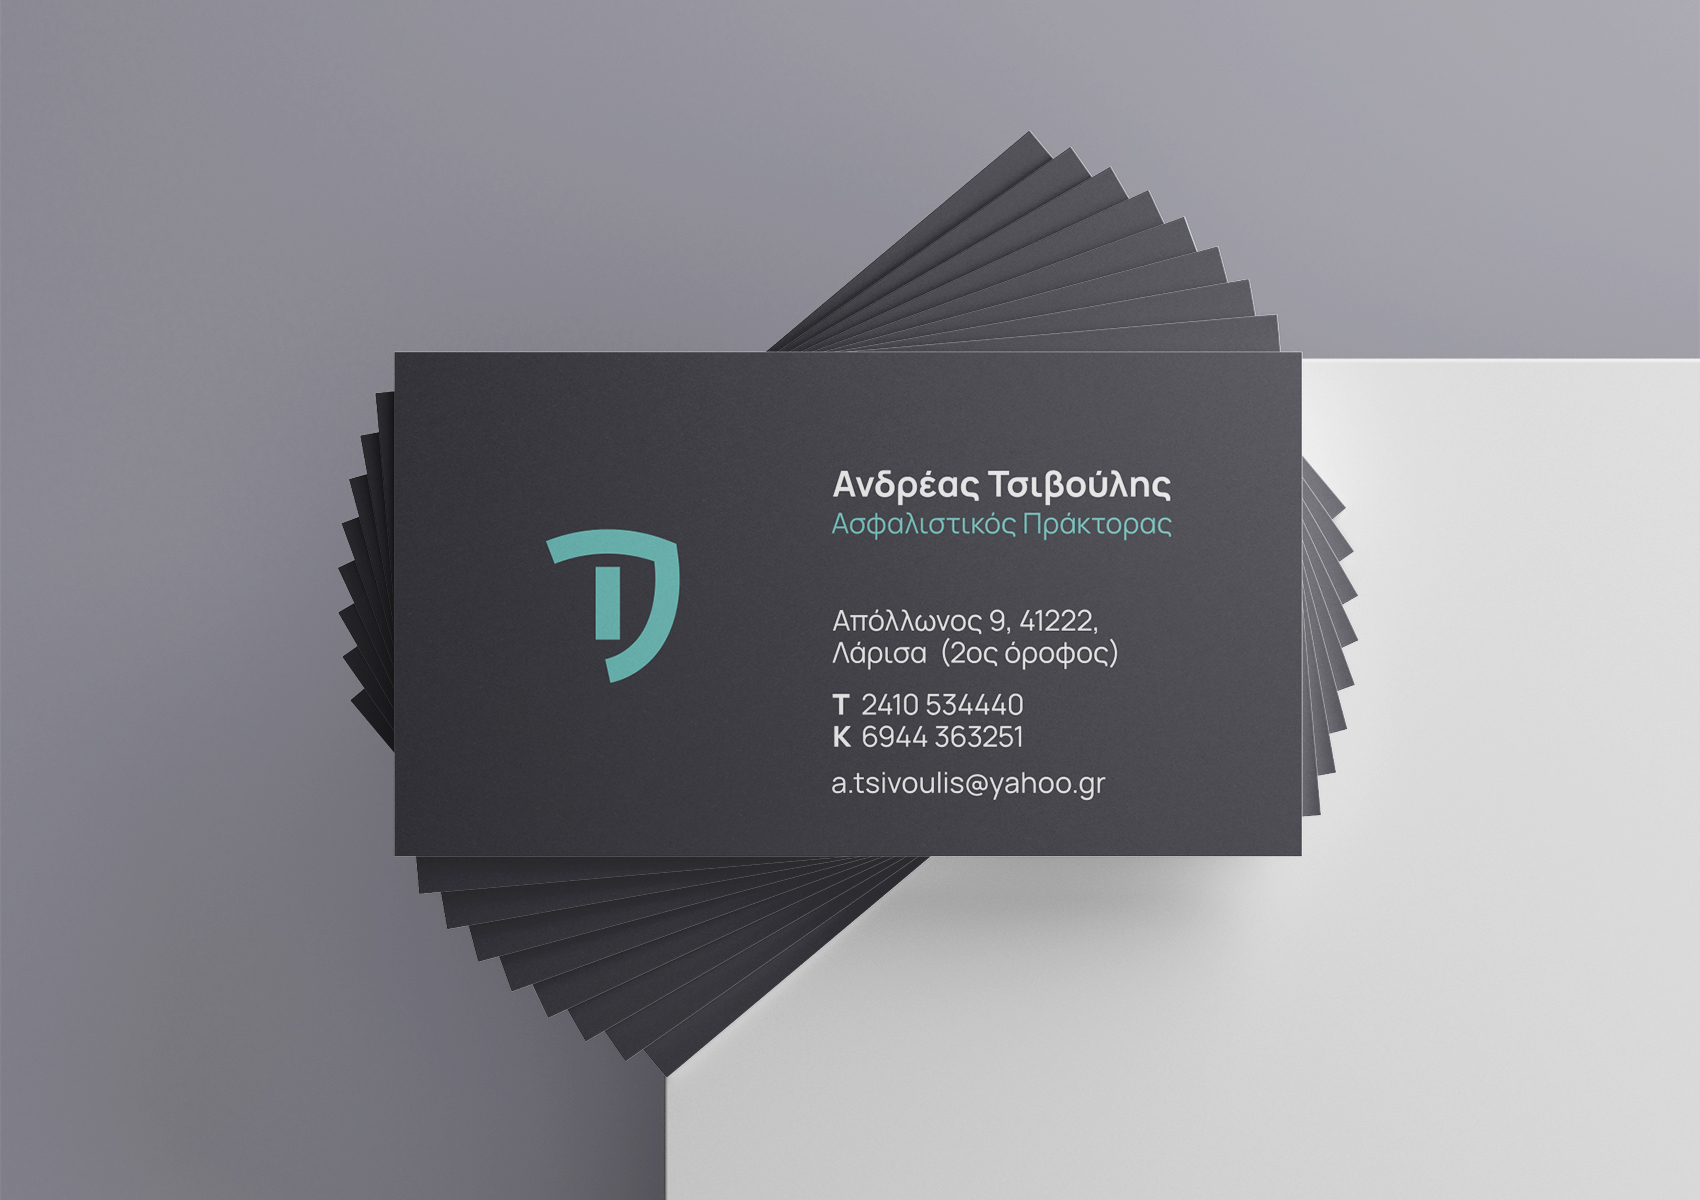 Andreas Tsivoulis business cards backside 1700x1200 by xhristakis